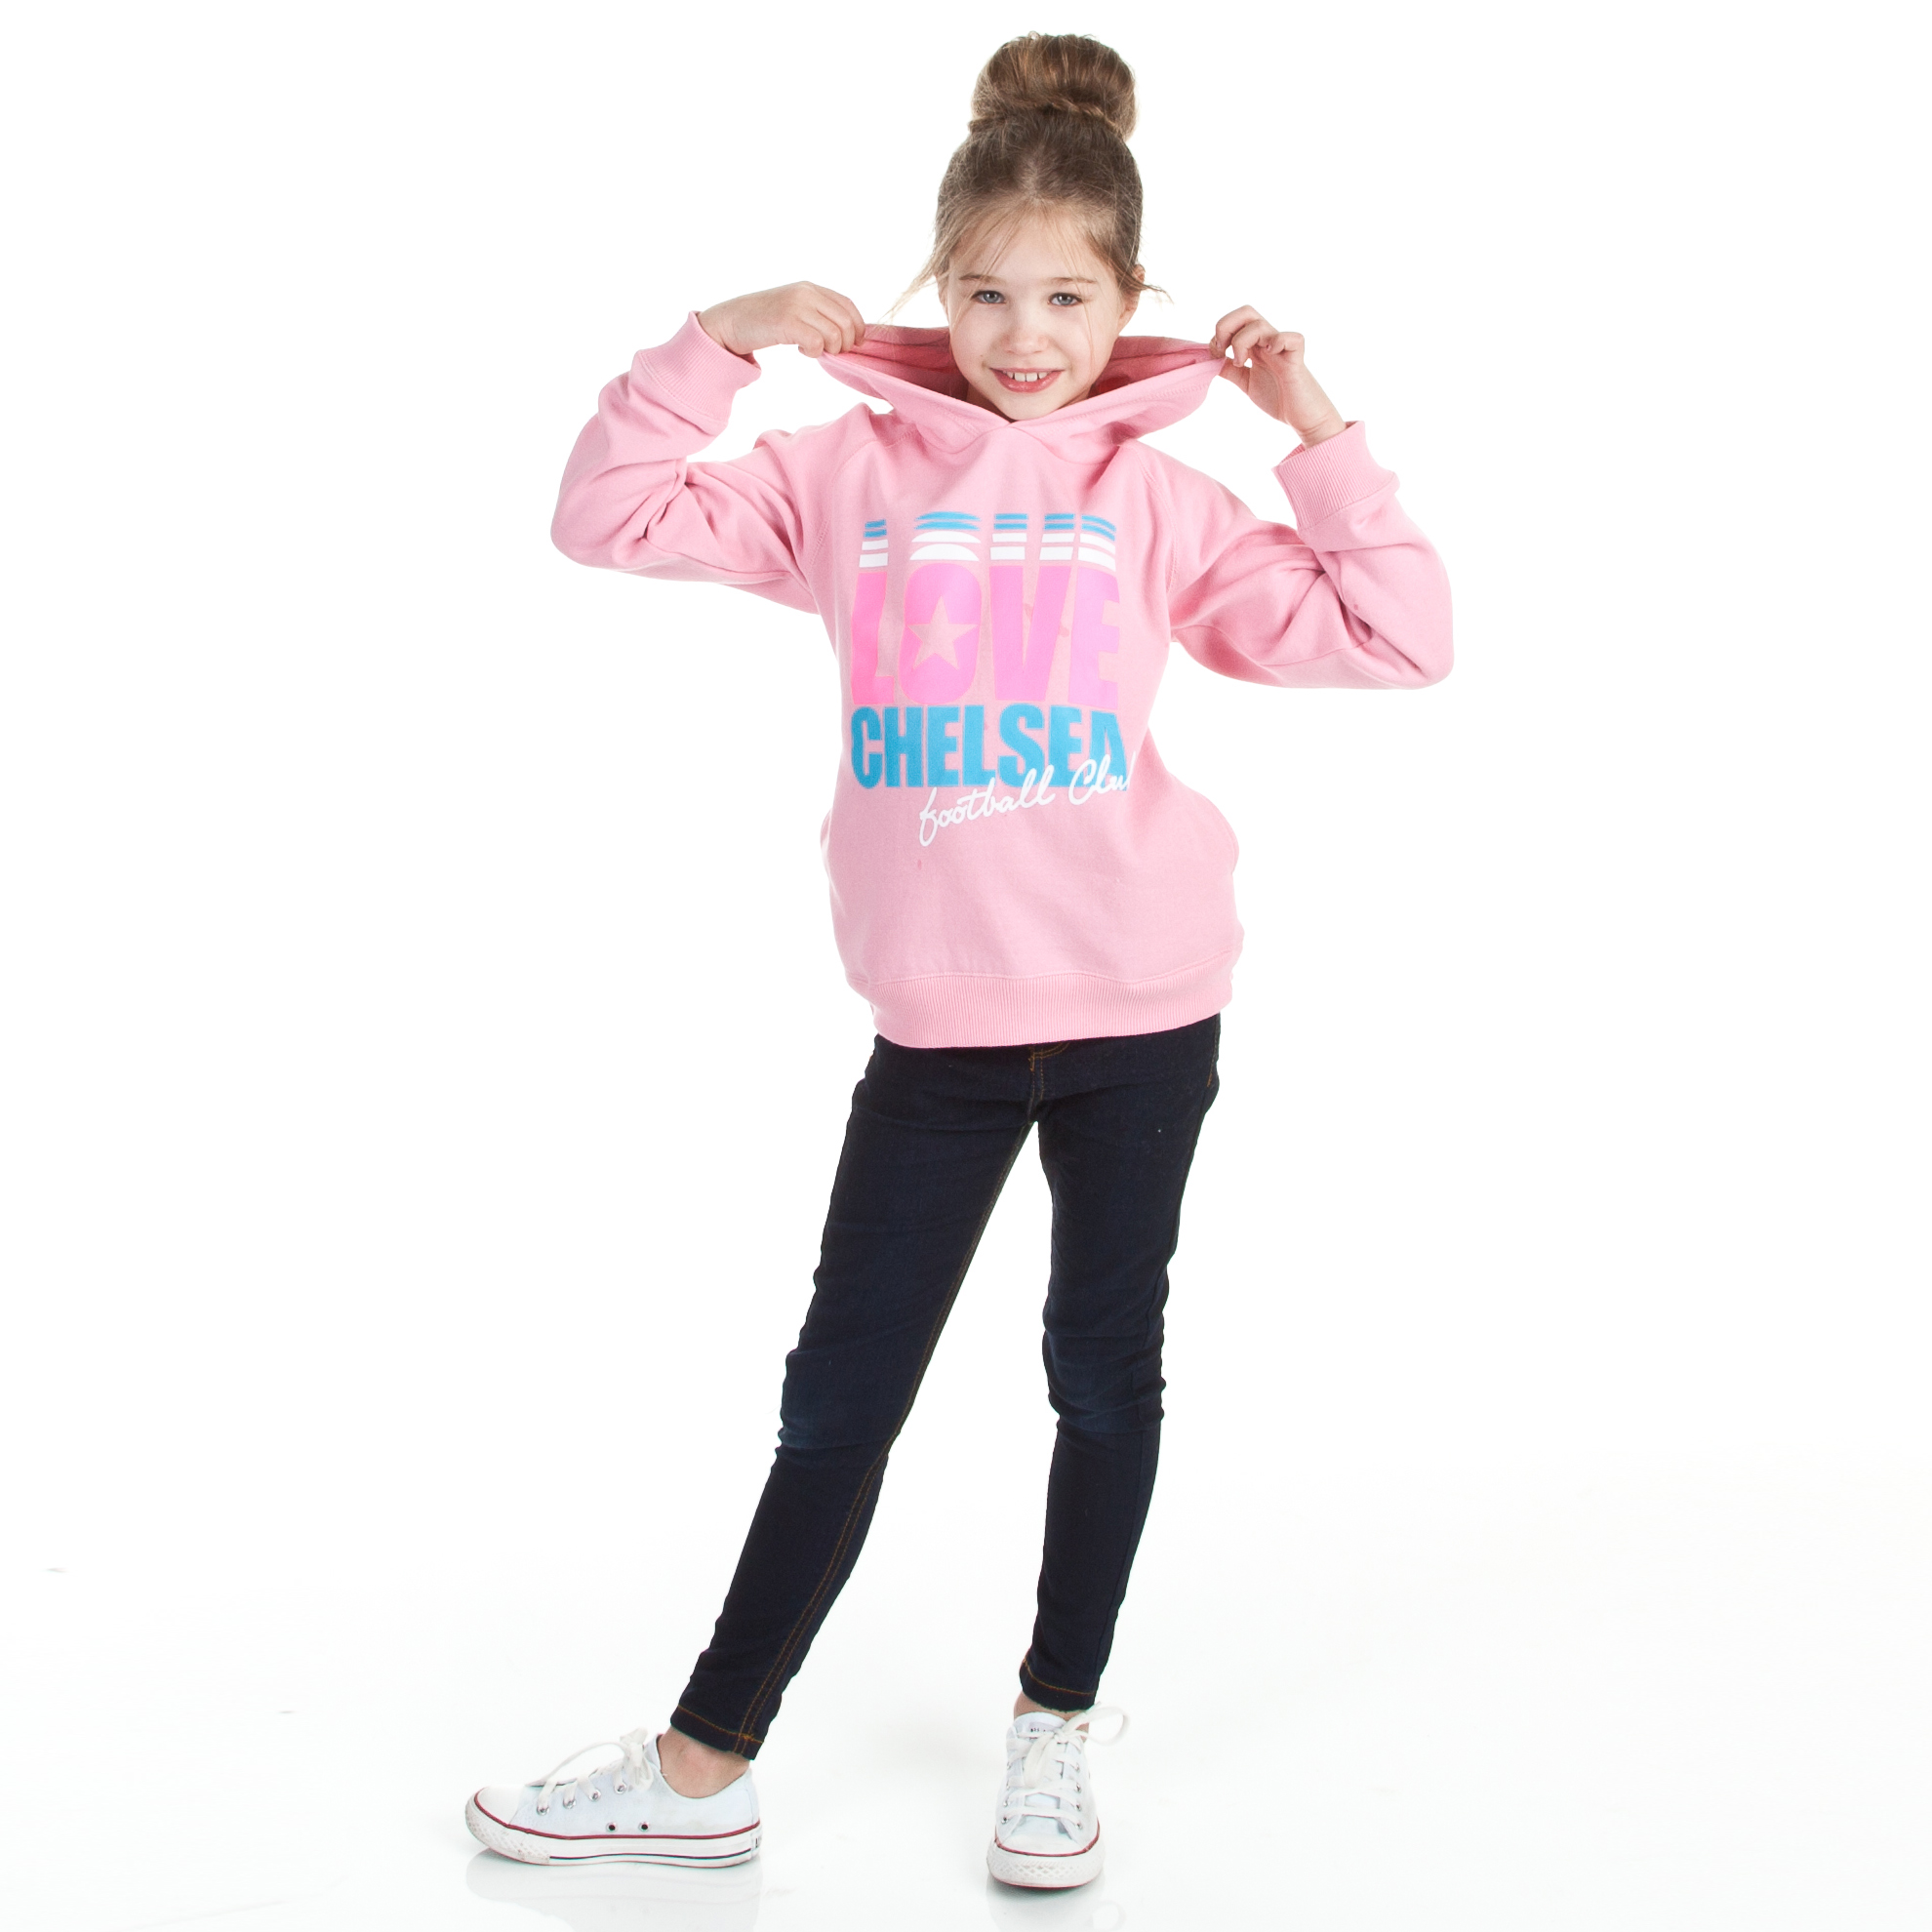 Chelsea Love Graphic Hoodie - Sherbet Pink - Older Girls